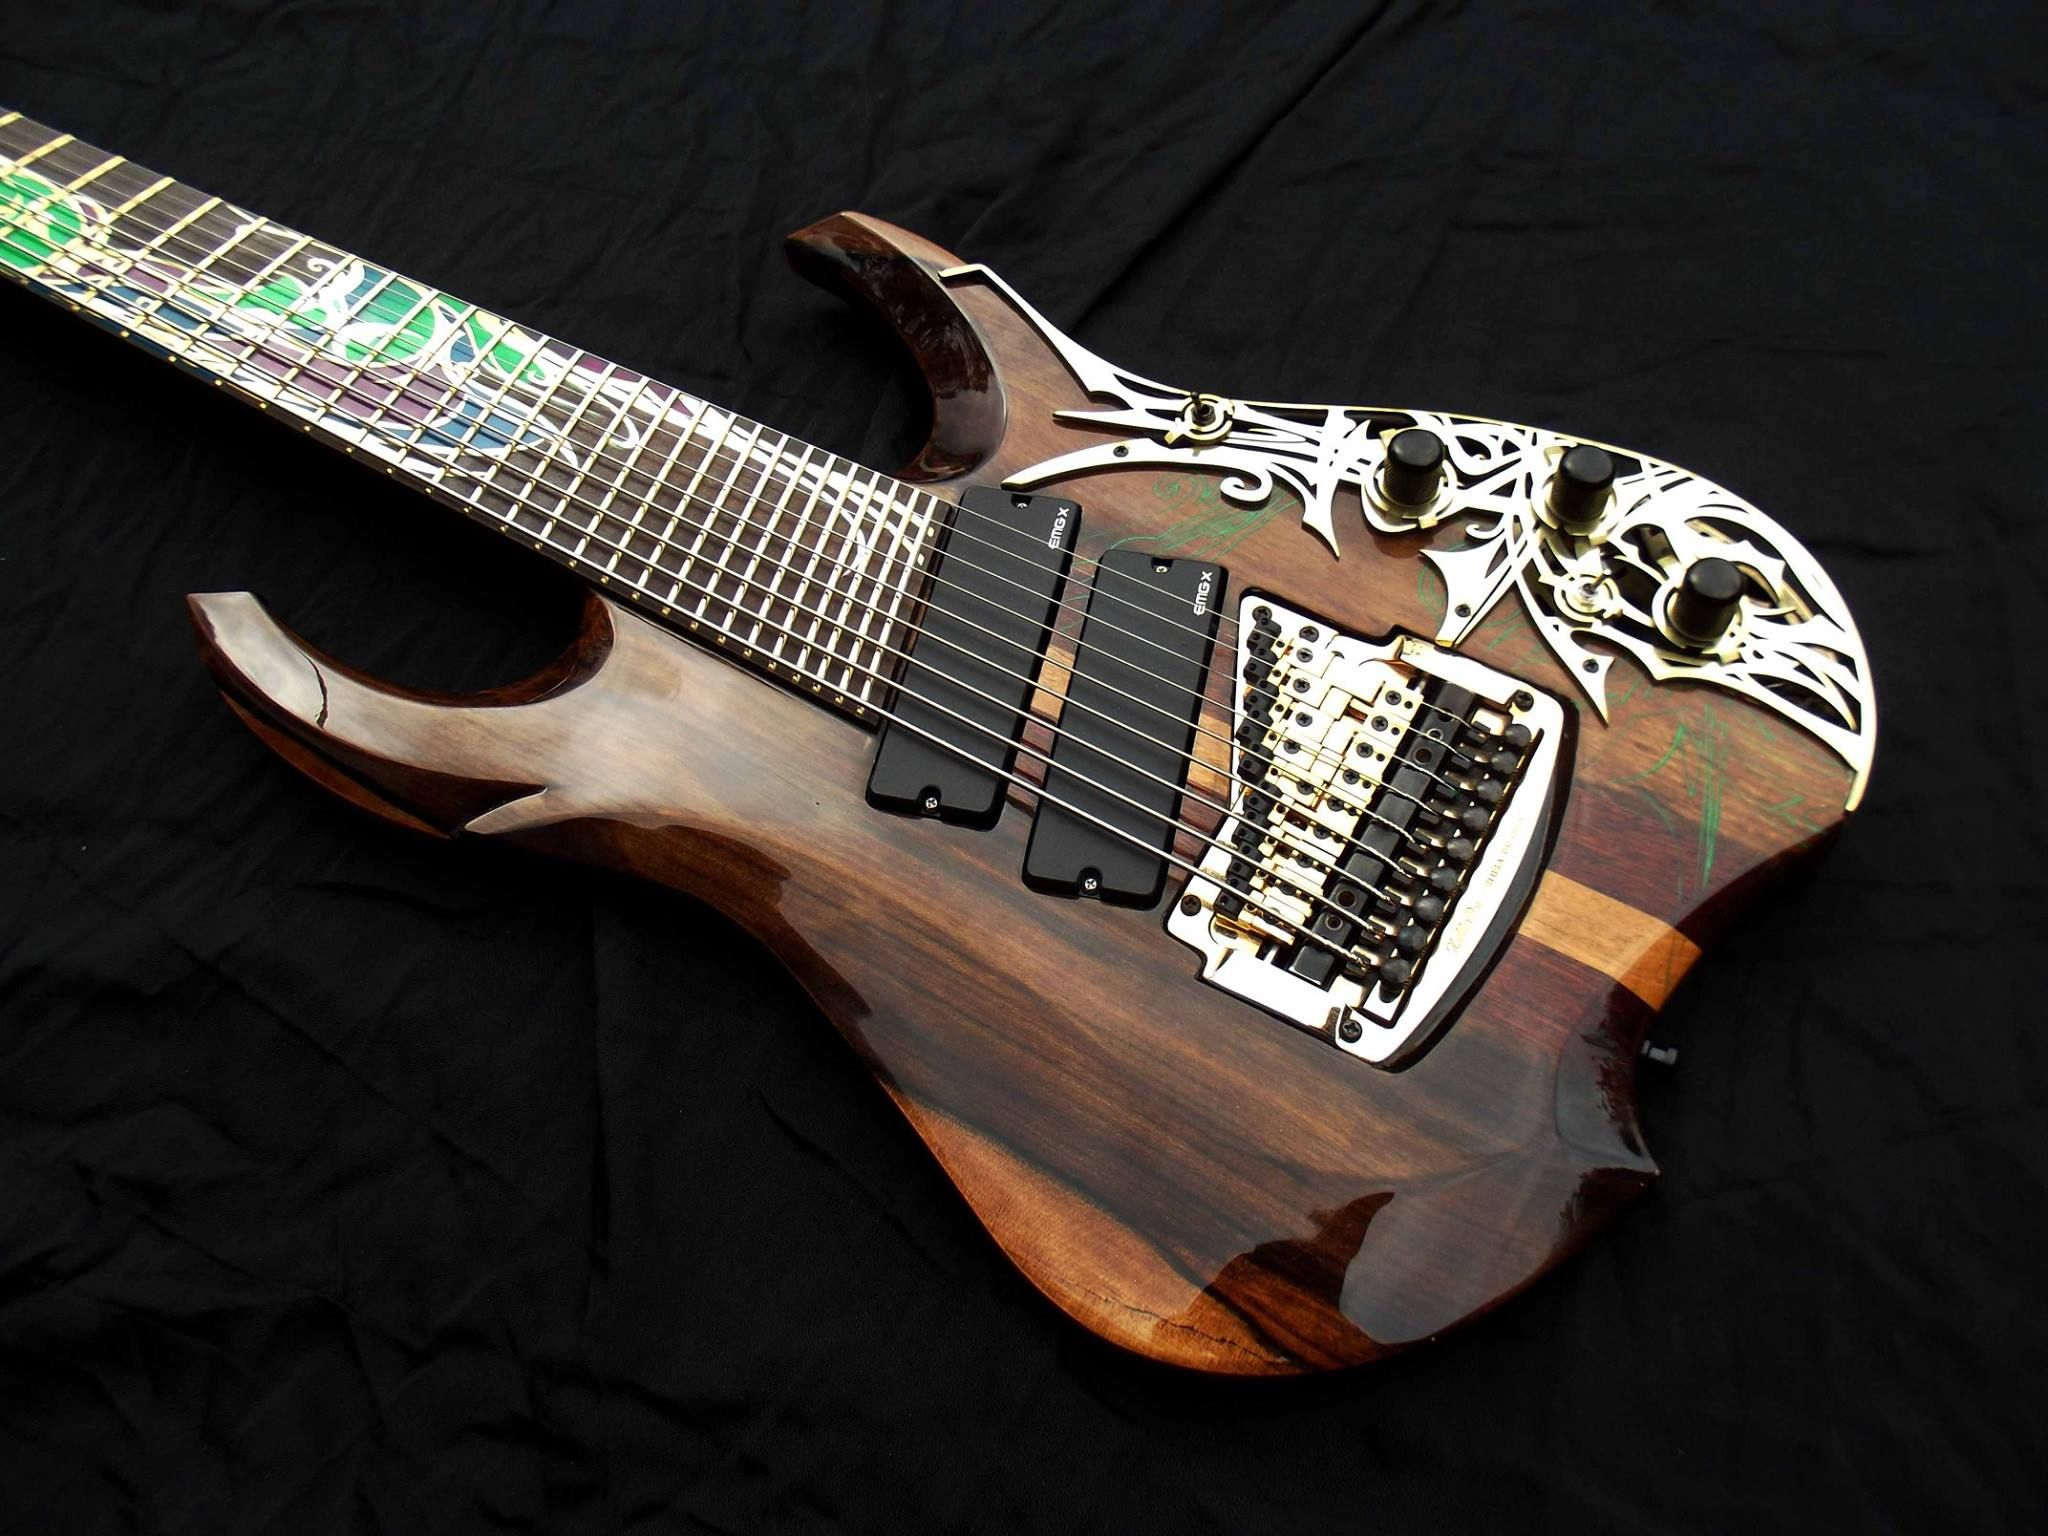 multi scale 9 string from etherial guitars with a customized kahler inspiration pinterest. Black Bedroom Furniture Sets. Home Design Ideas